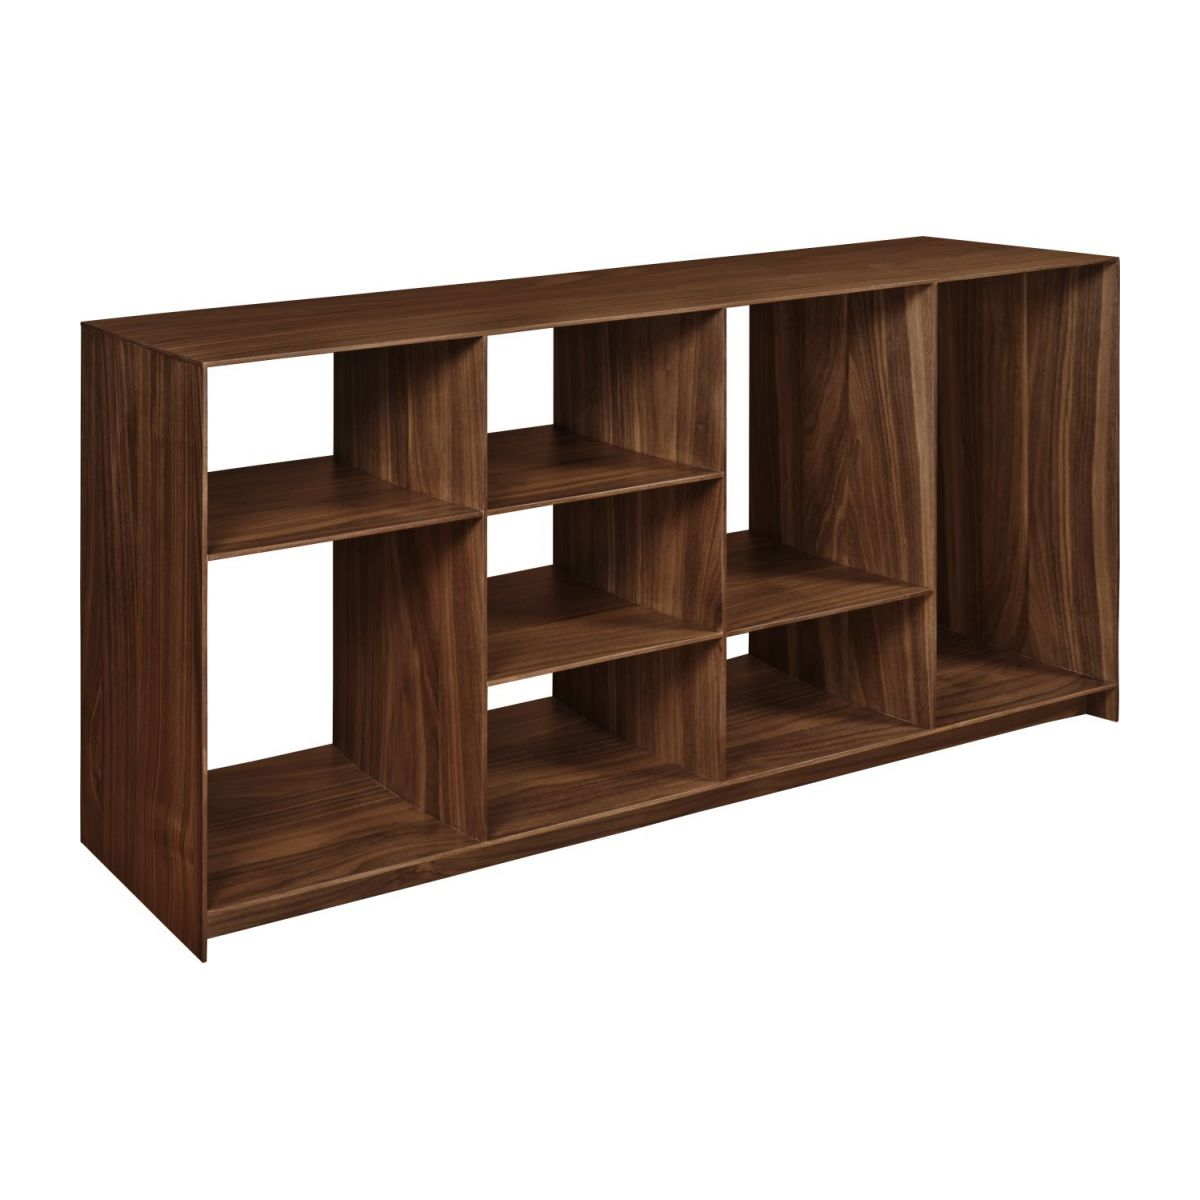 Low walnut tree shelf  n°1